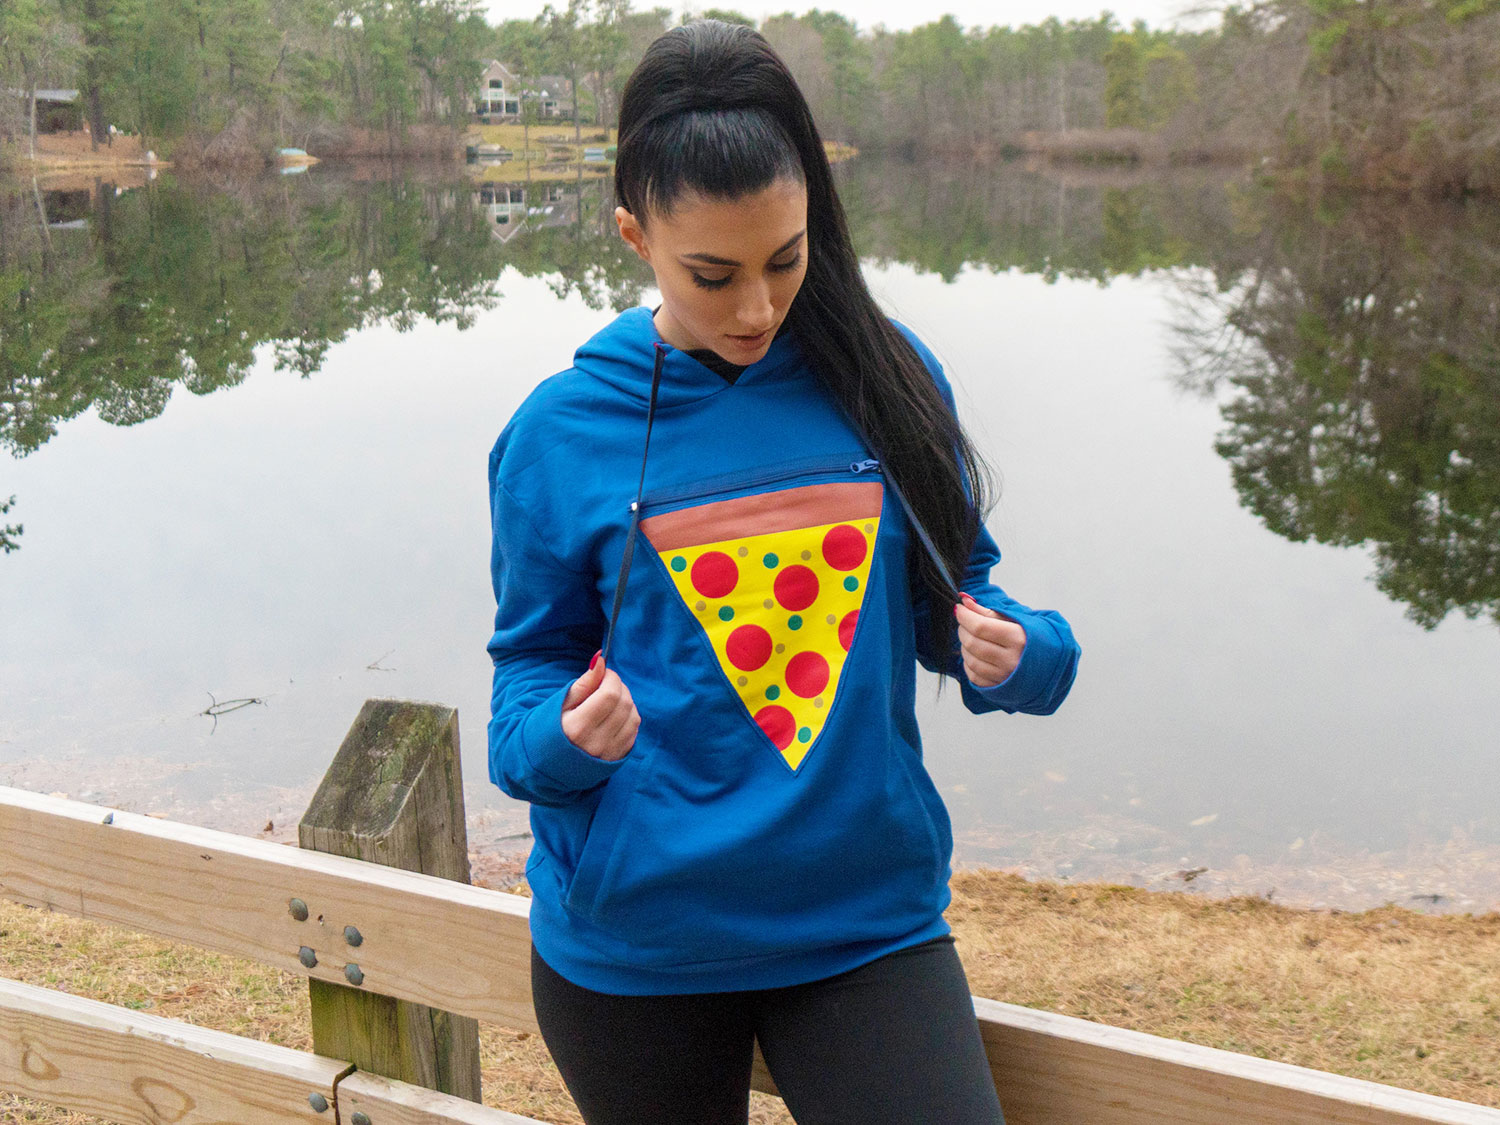 The 'Pizza Pocket Hoodie' Has a Built-In Pouch to Hold a Warm Slice